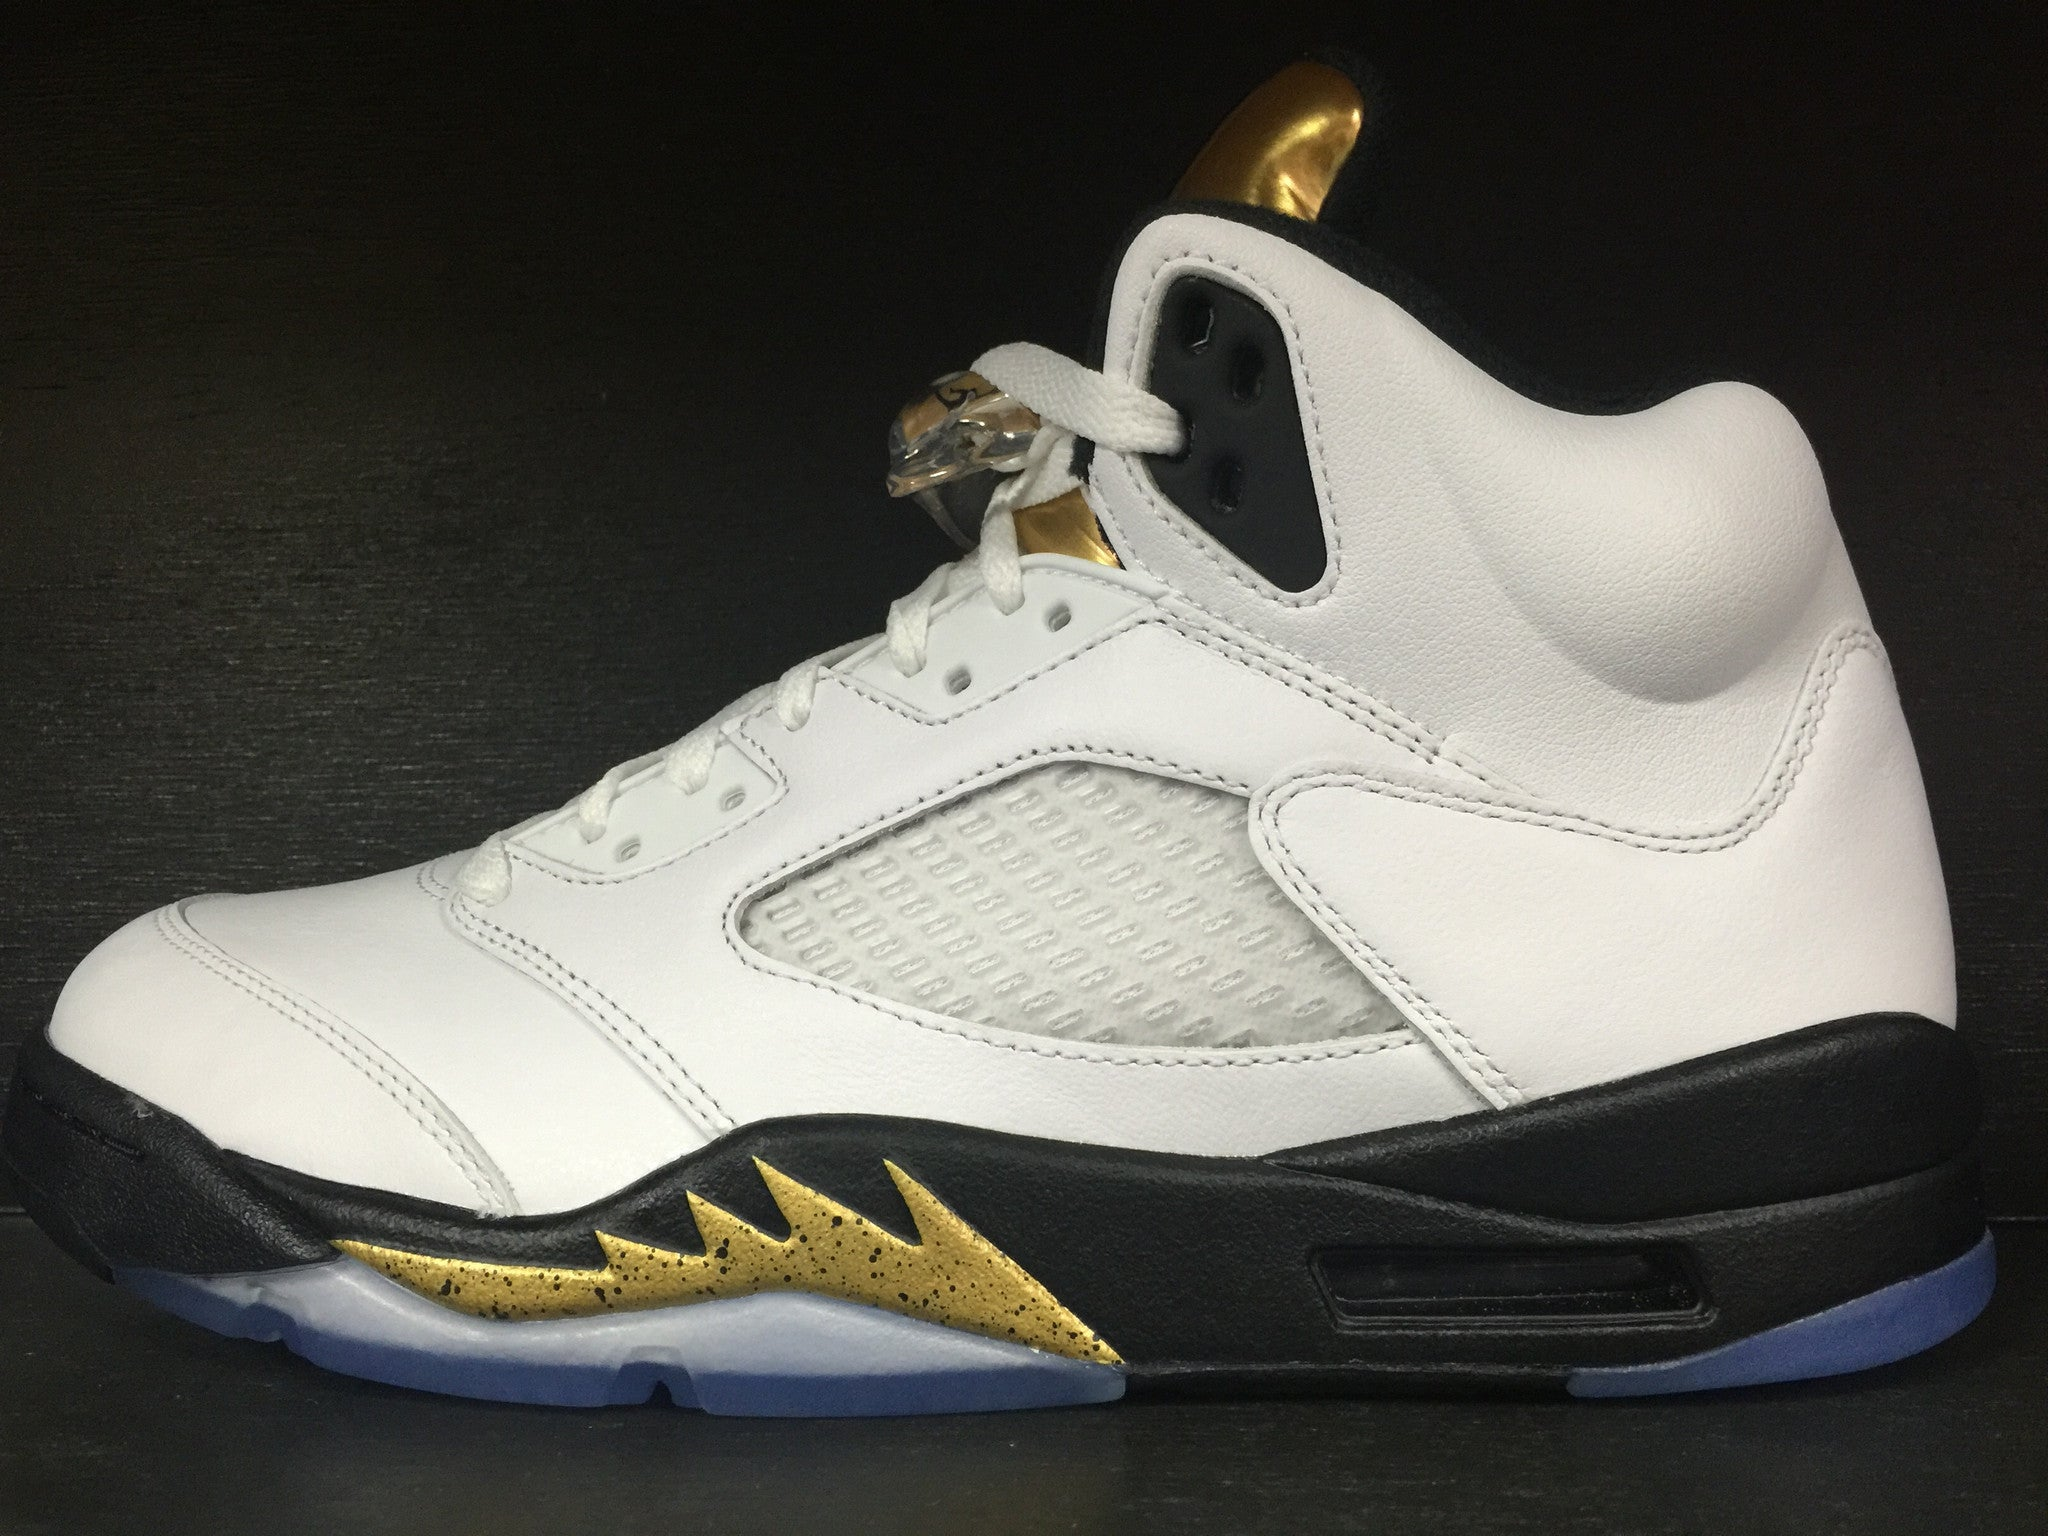 Air Jordan 5 Retro 'Olympic' 'Gold'